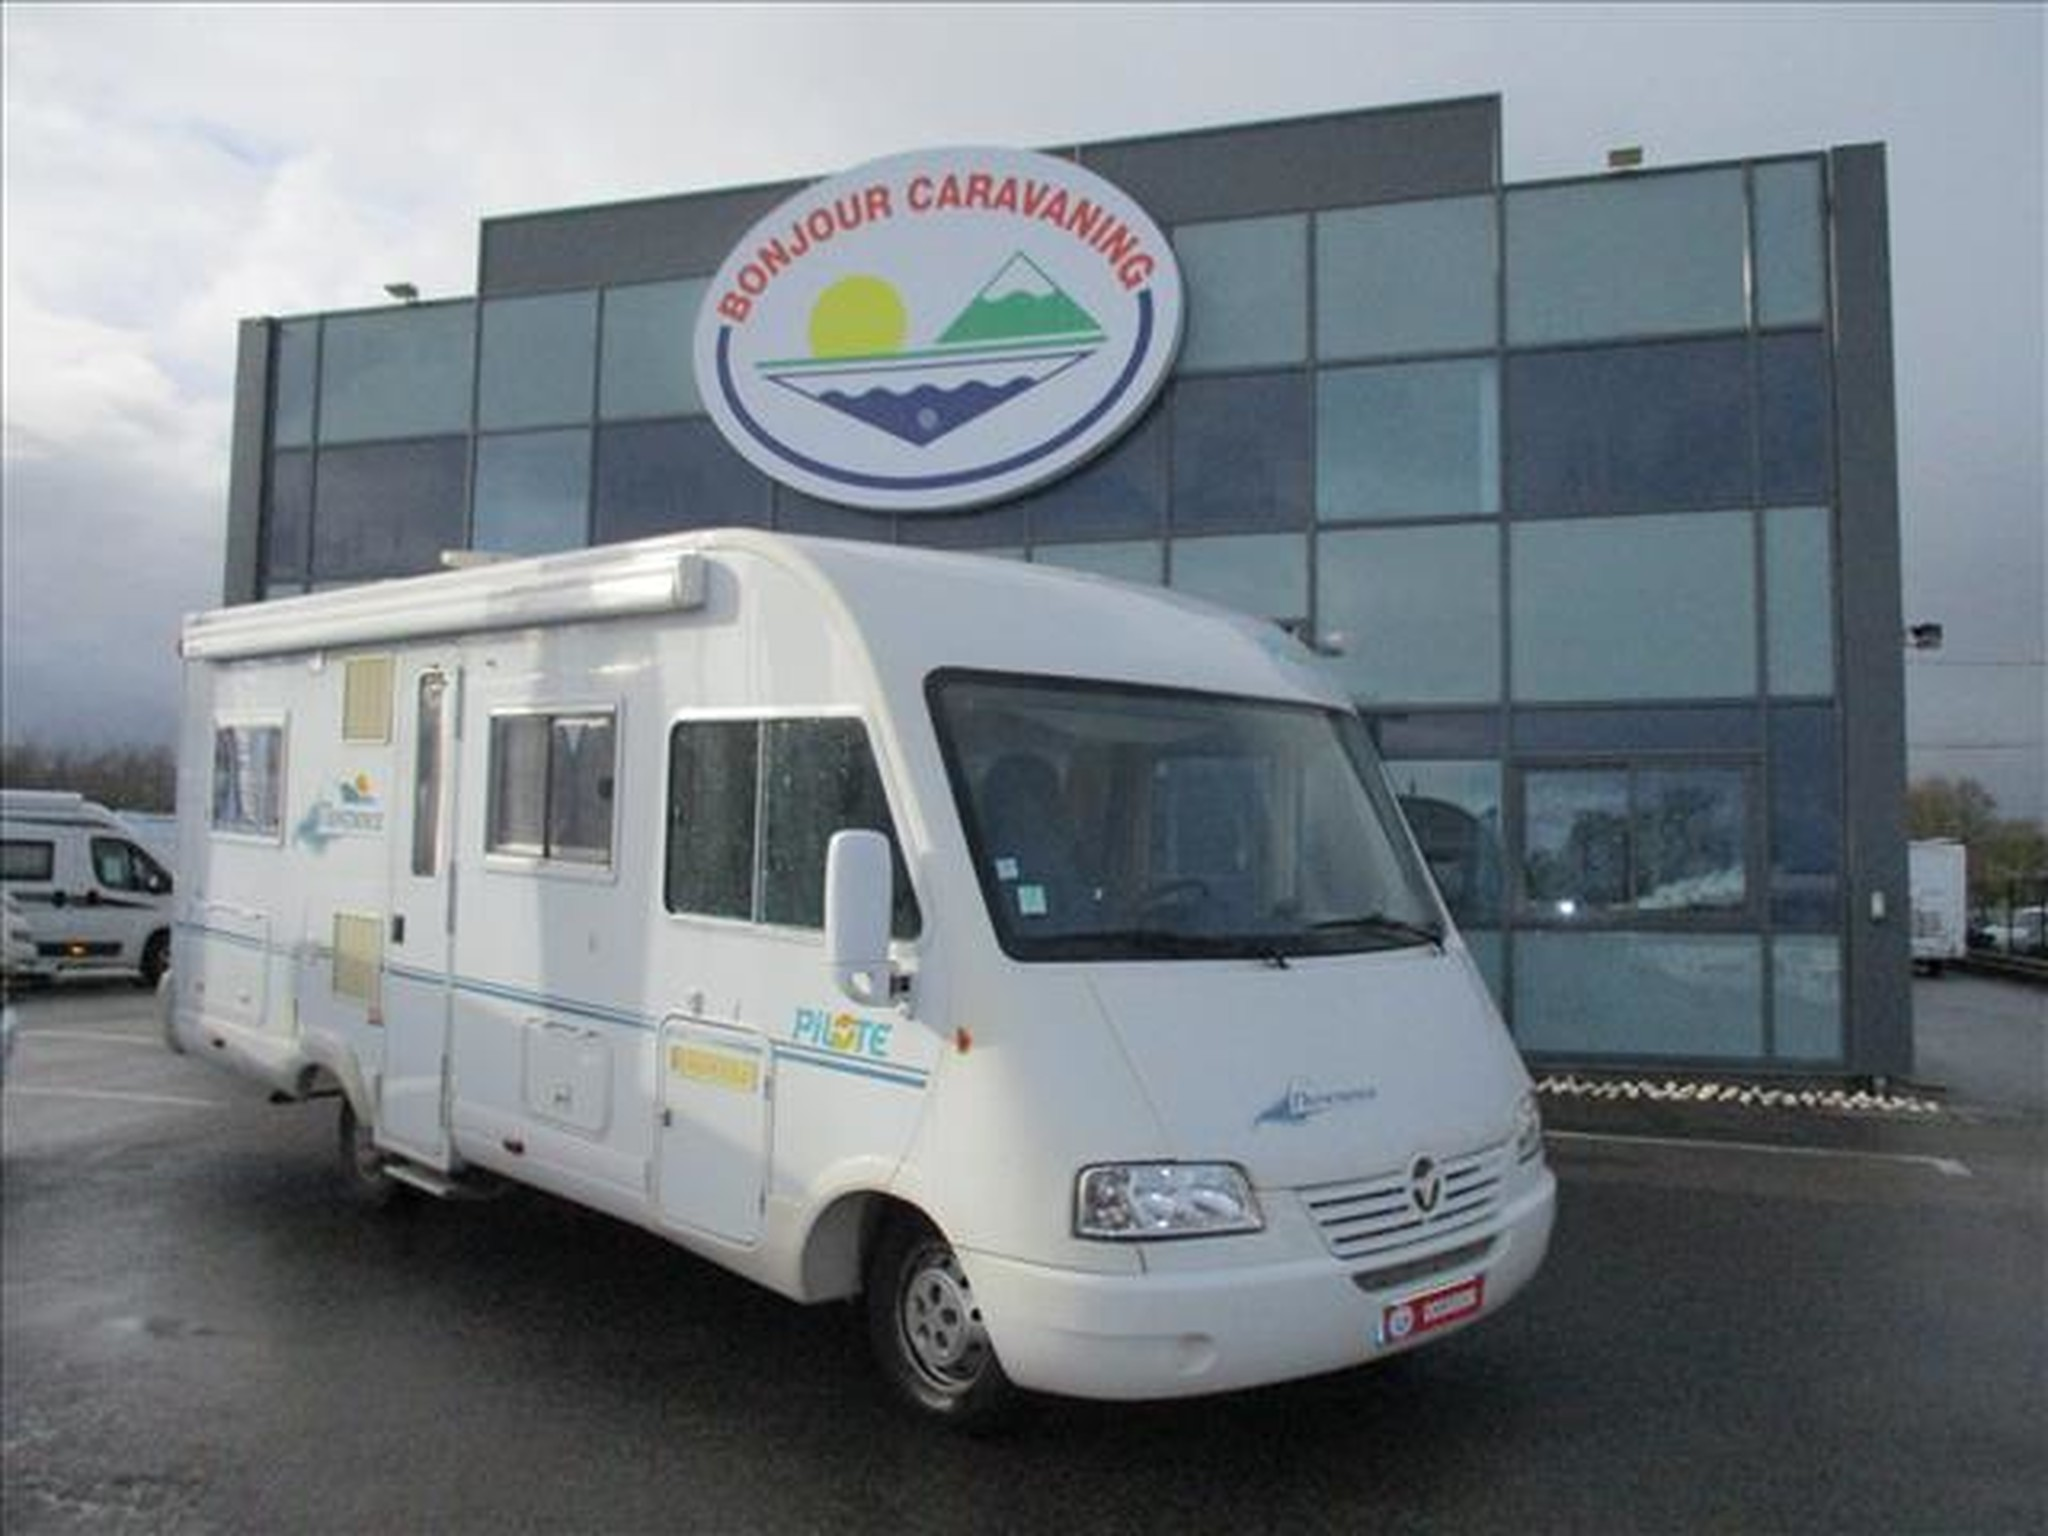 Camping-car PILOTE REFERENCE G 680 .